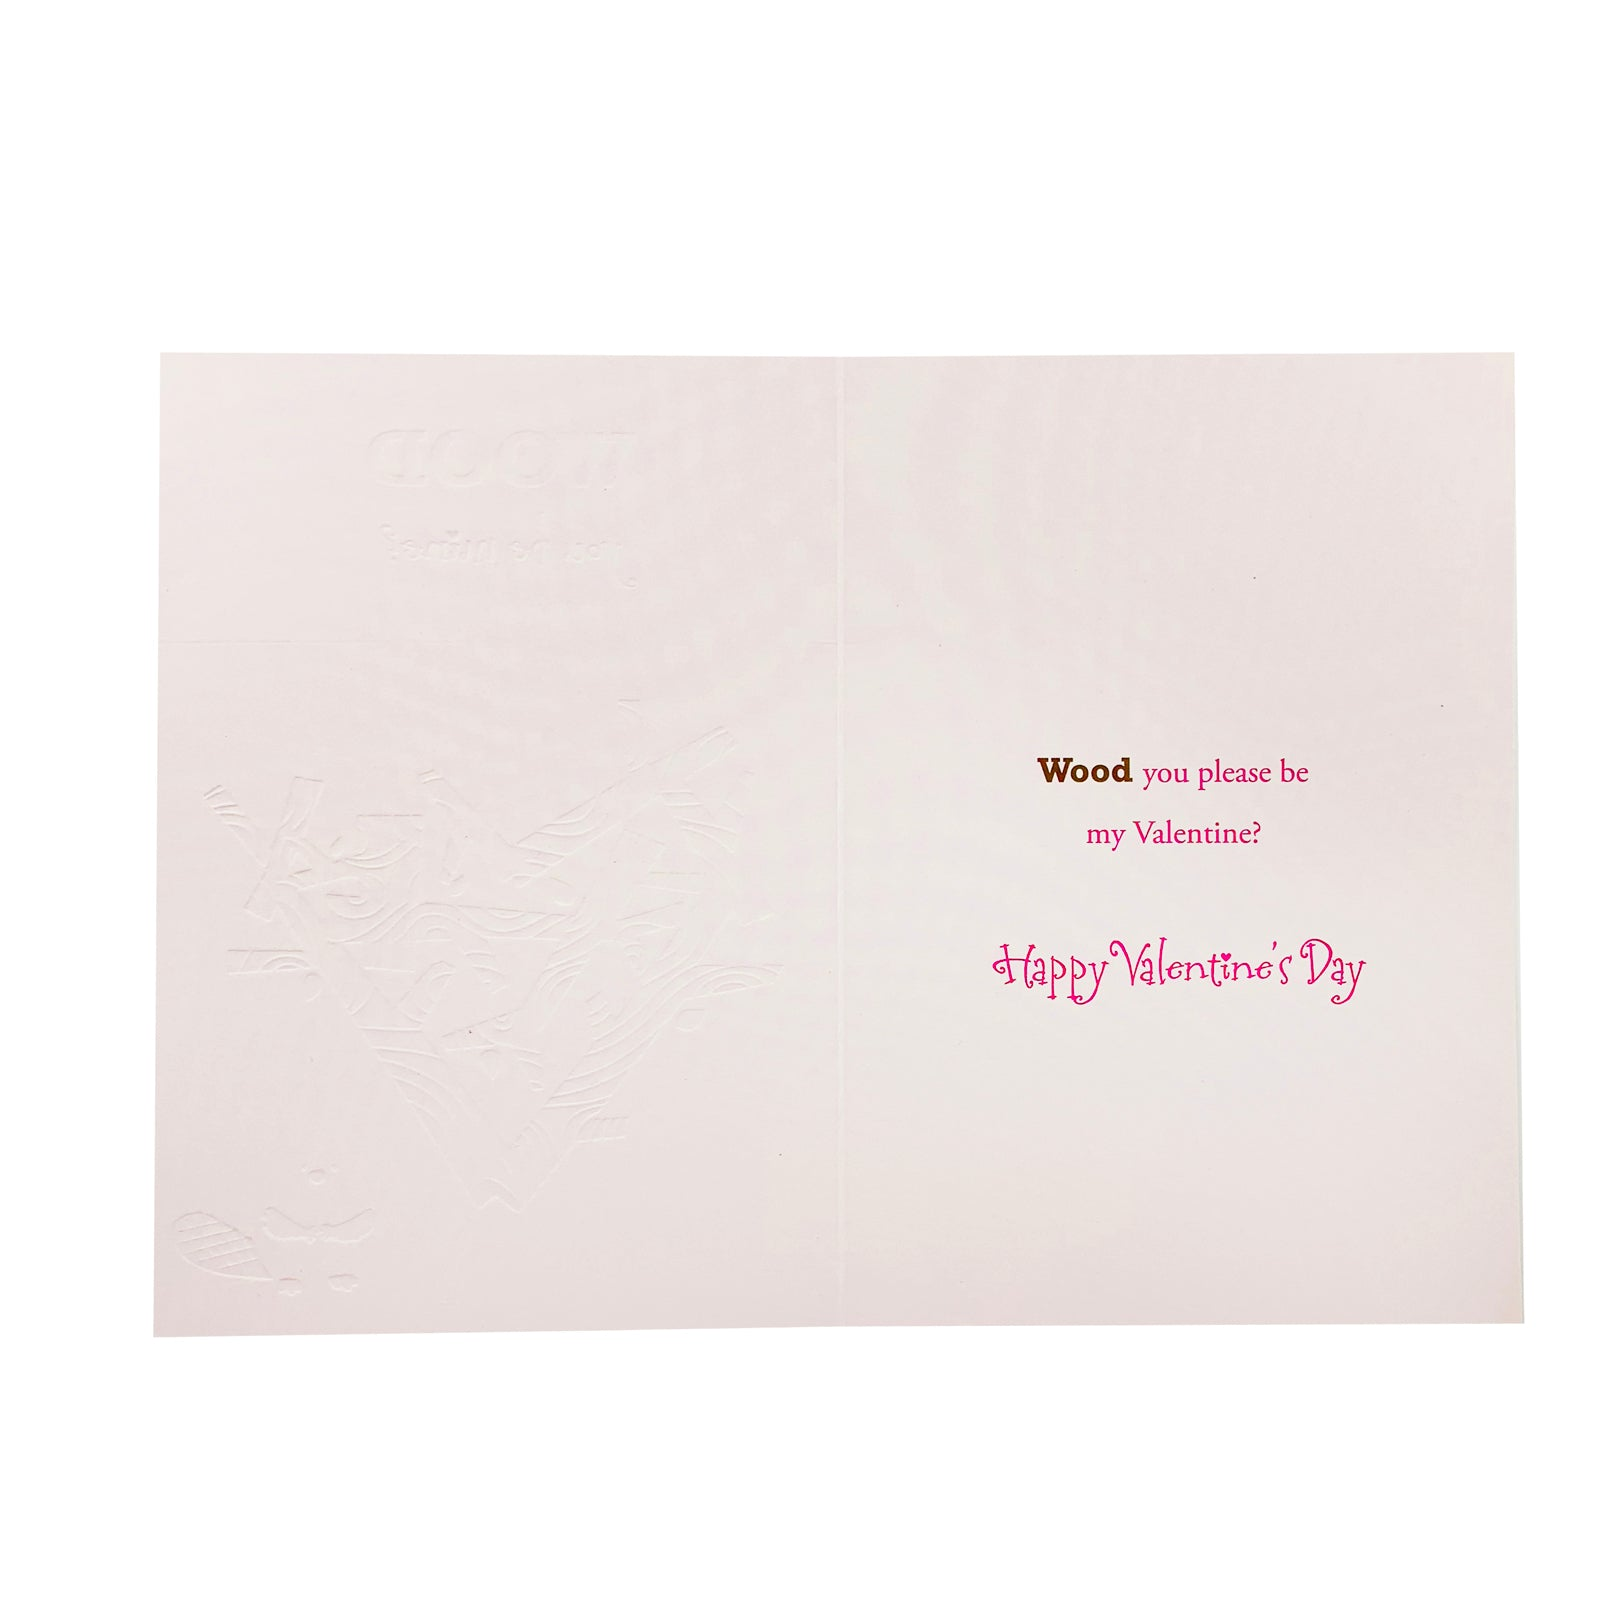 Designer Greetings Valentine's Day Card - Wood You Be Mine